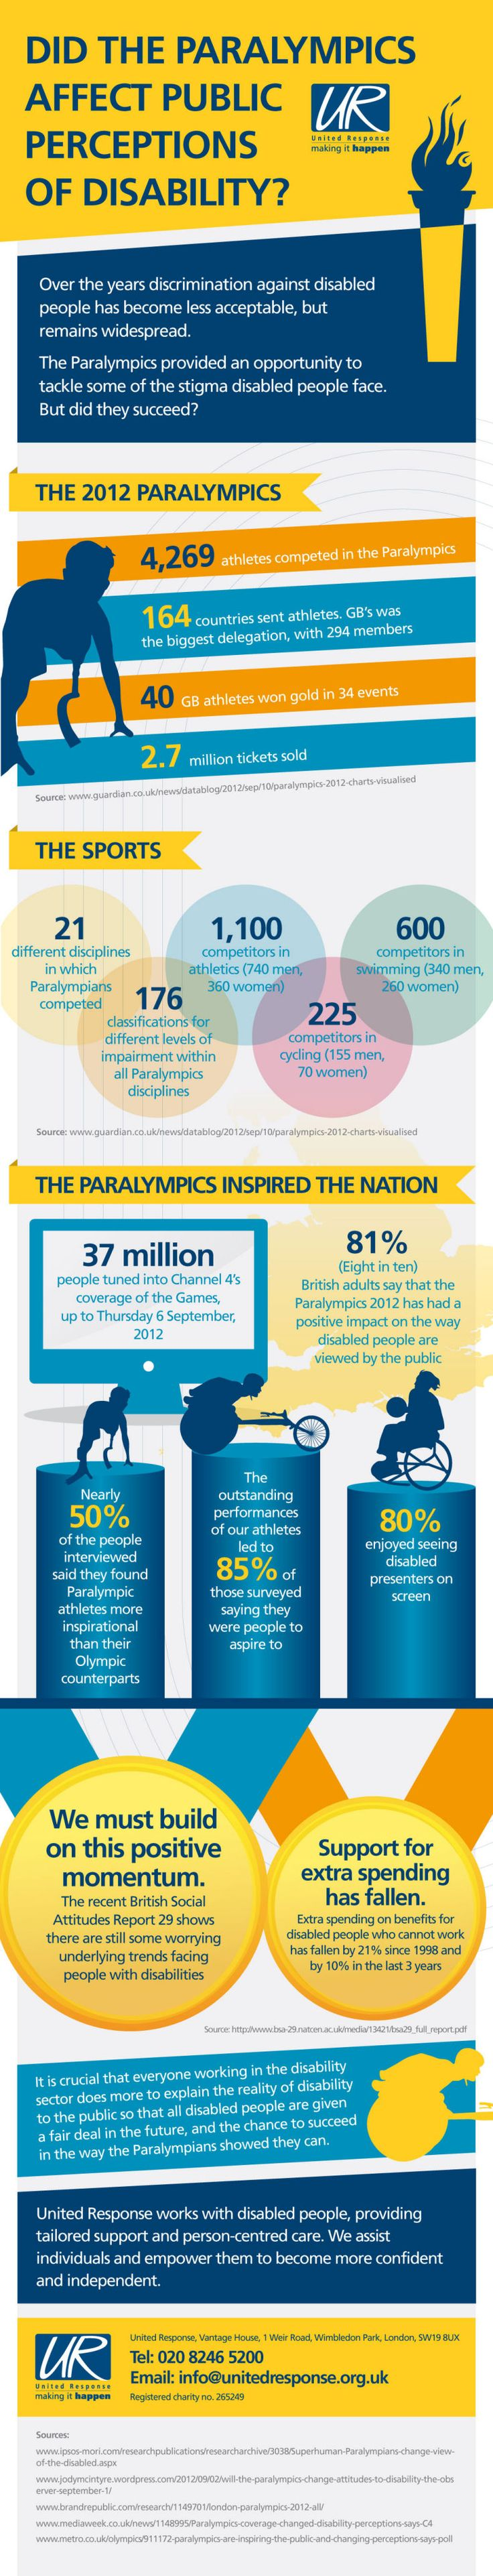 Did the Paralympics affect public perceptions of disability? #Infographic